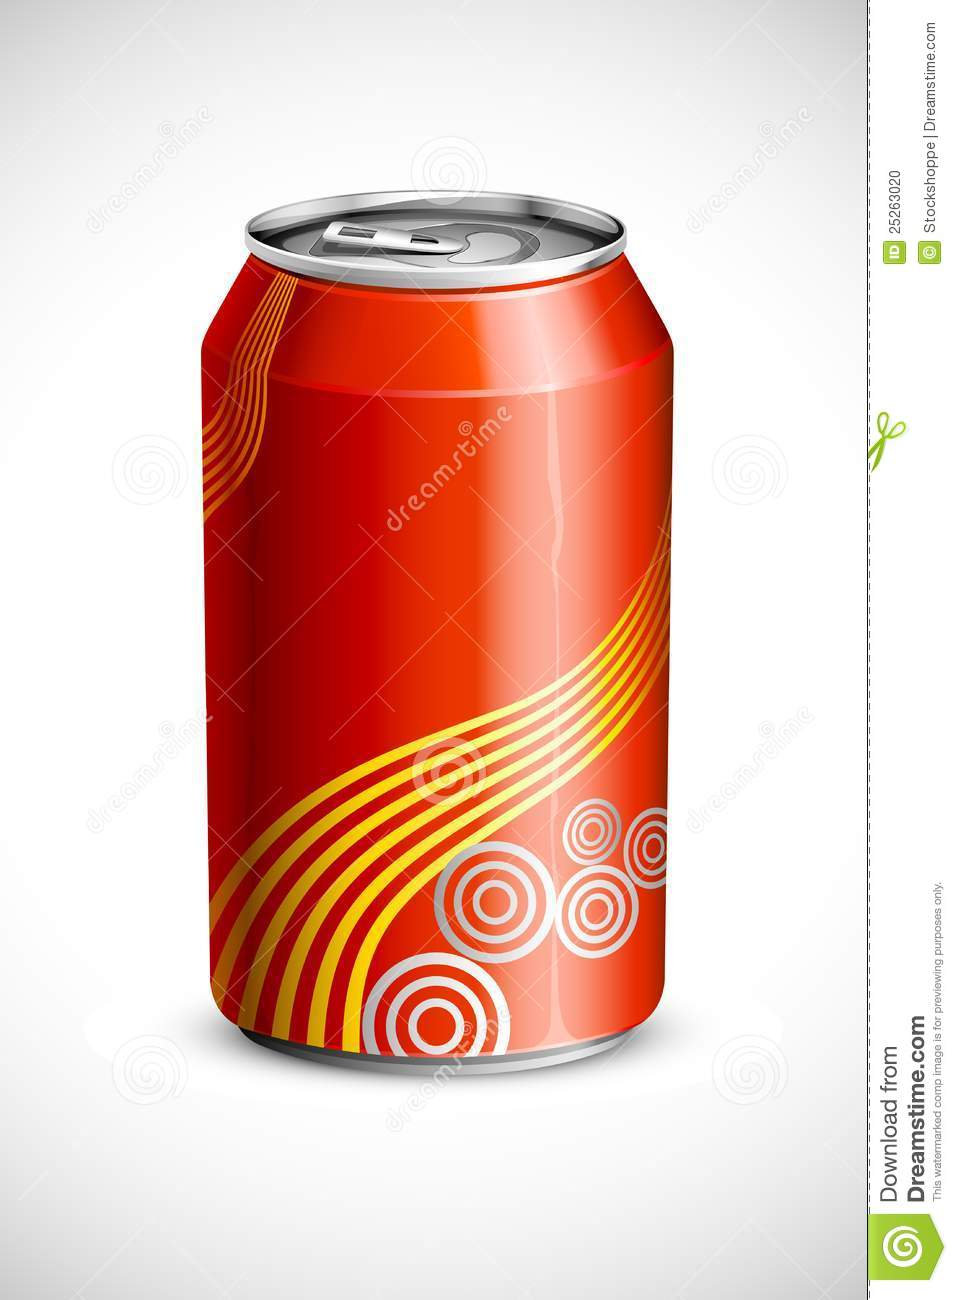 Drink Can From Blank Aluminum Stock Photo: Cold Drink Can Stock Vector. Illustration Of Canned, Cola